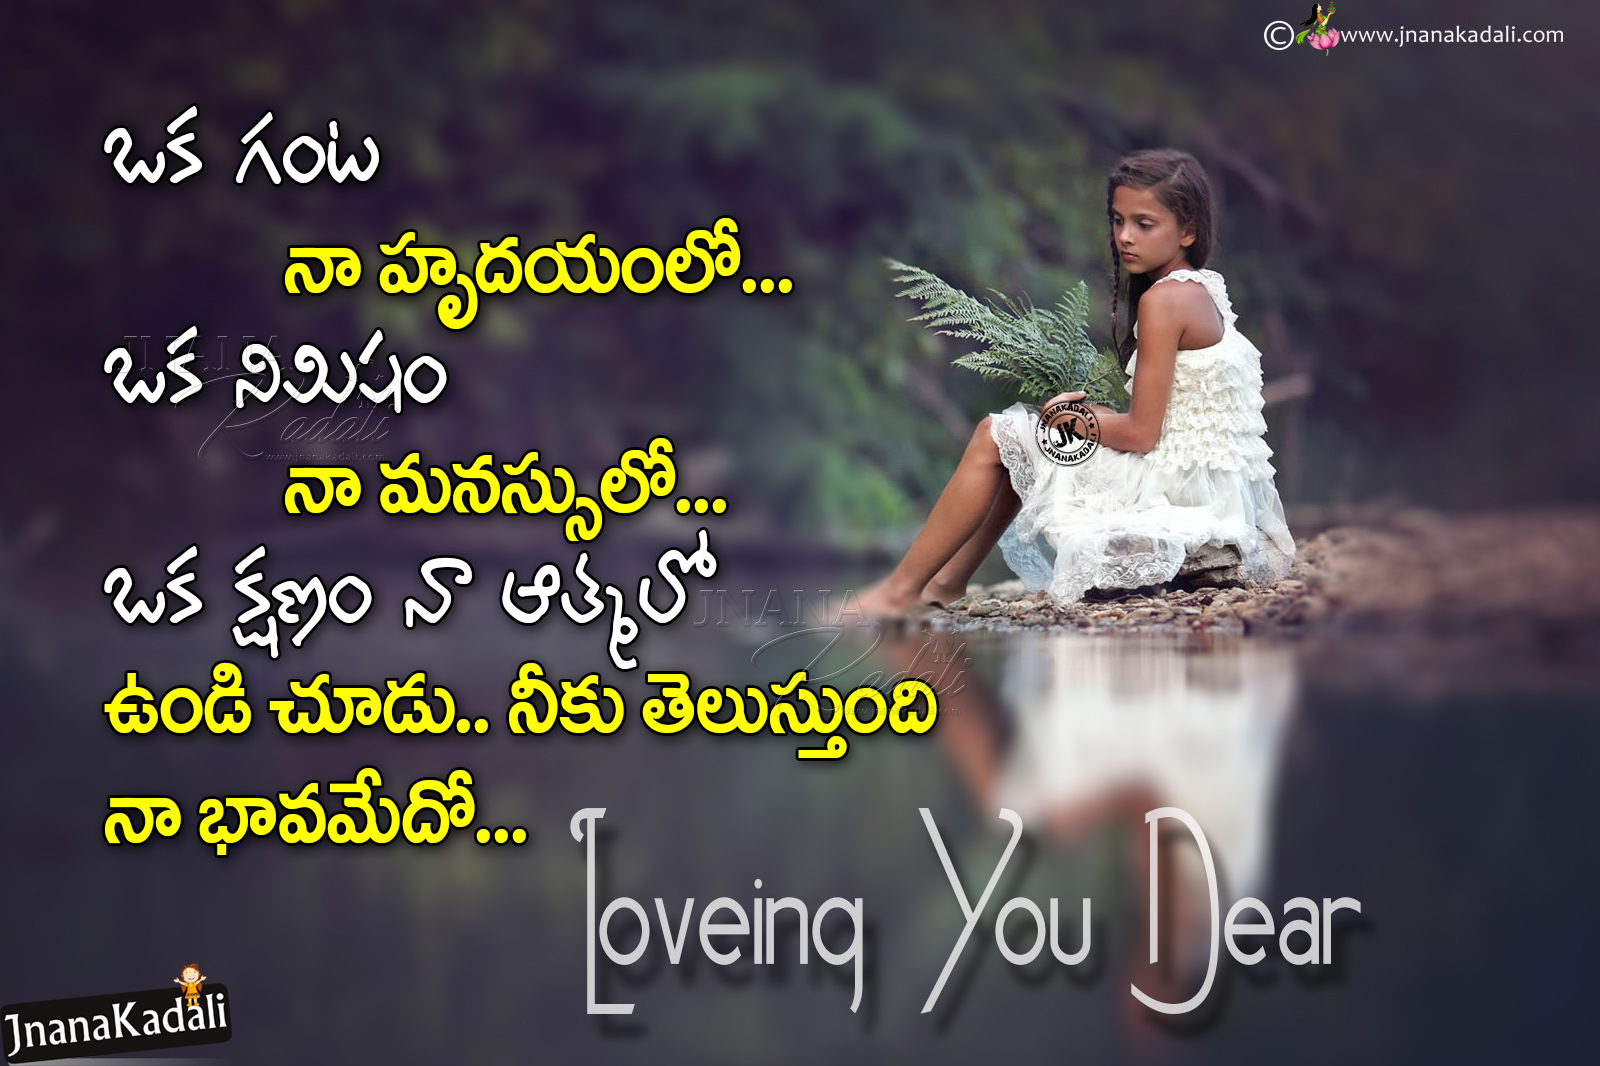 Telugu Love Quotes Love Poetry In Telugualone Thinking Love Quotes With Hd